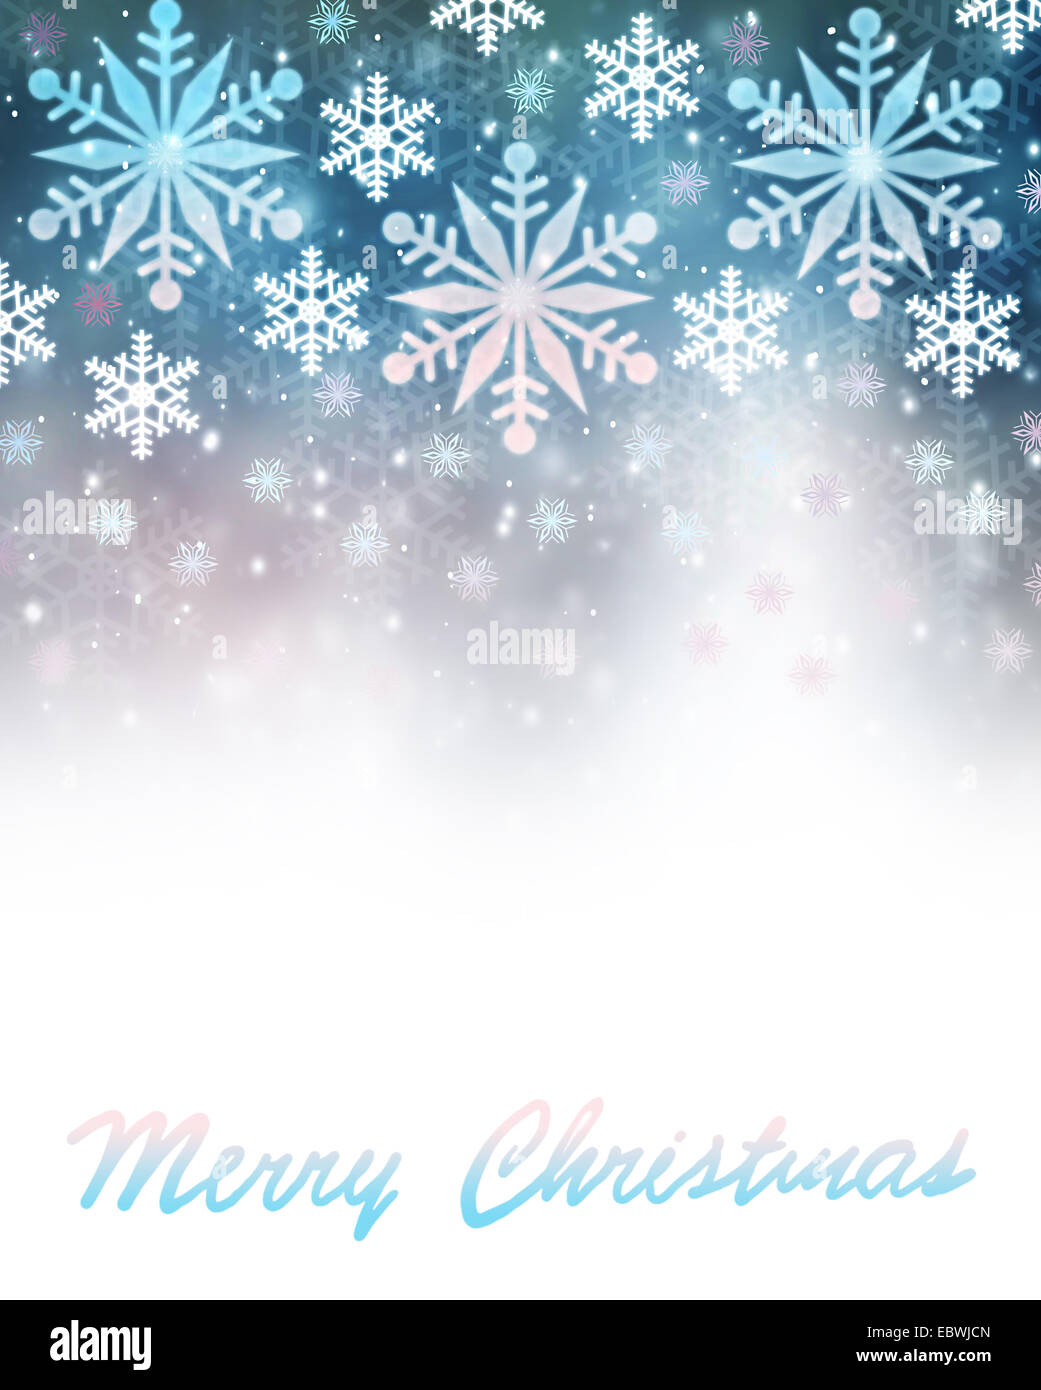 Merry Christmas Greeting Card Abstract Festive Border